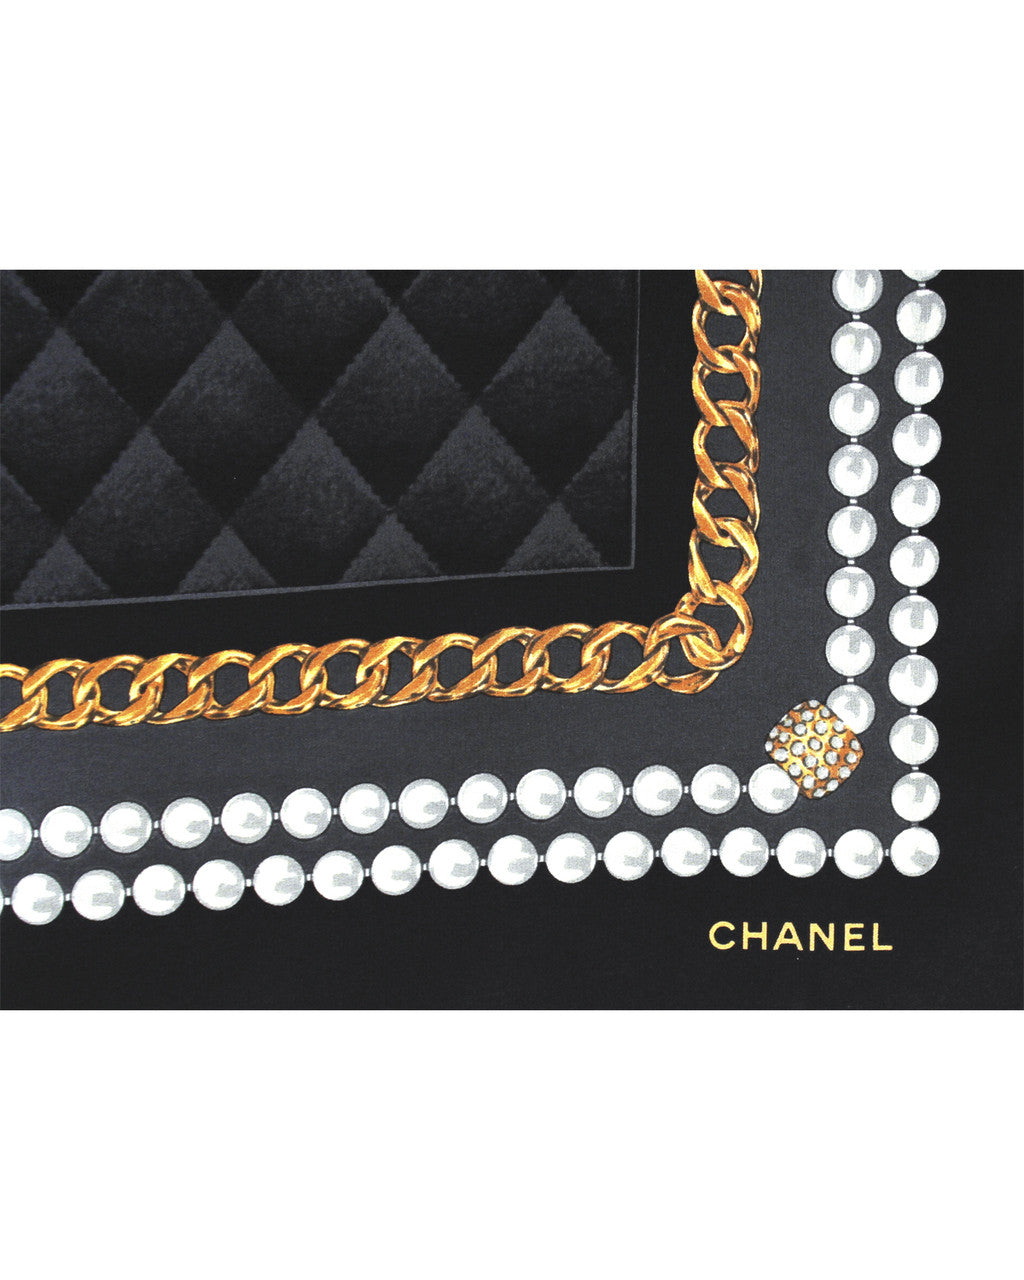 Chanel Pearl & Gold Chain Printed Silk Scarf